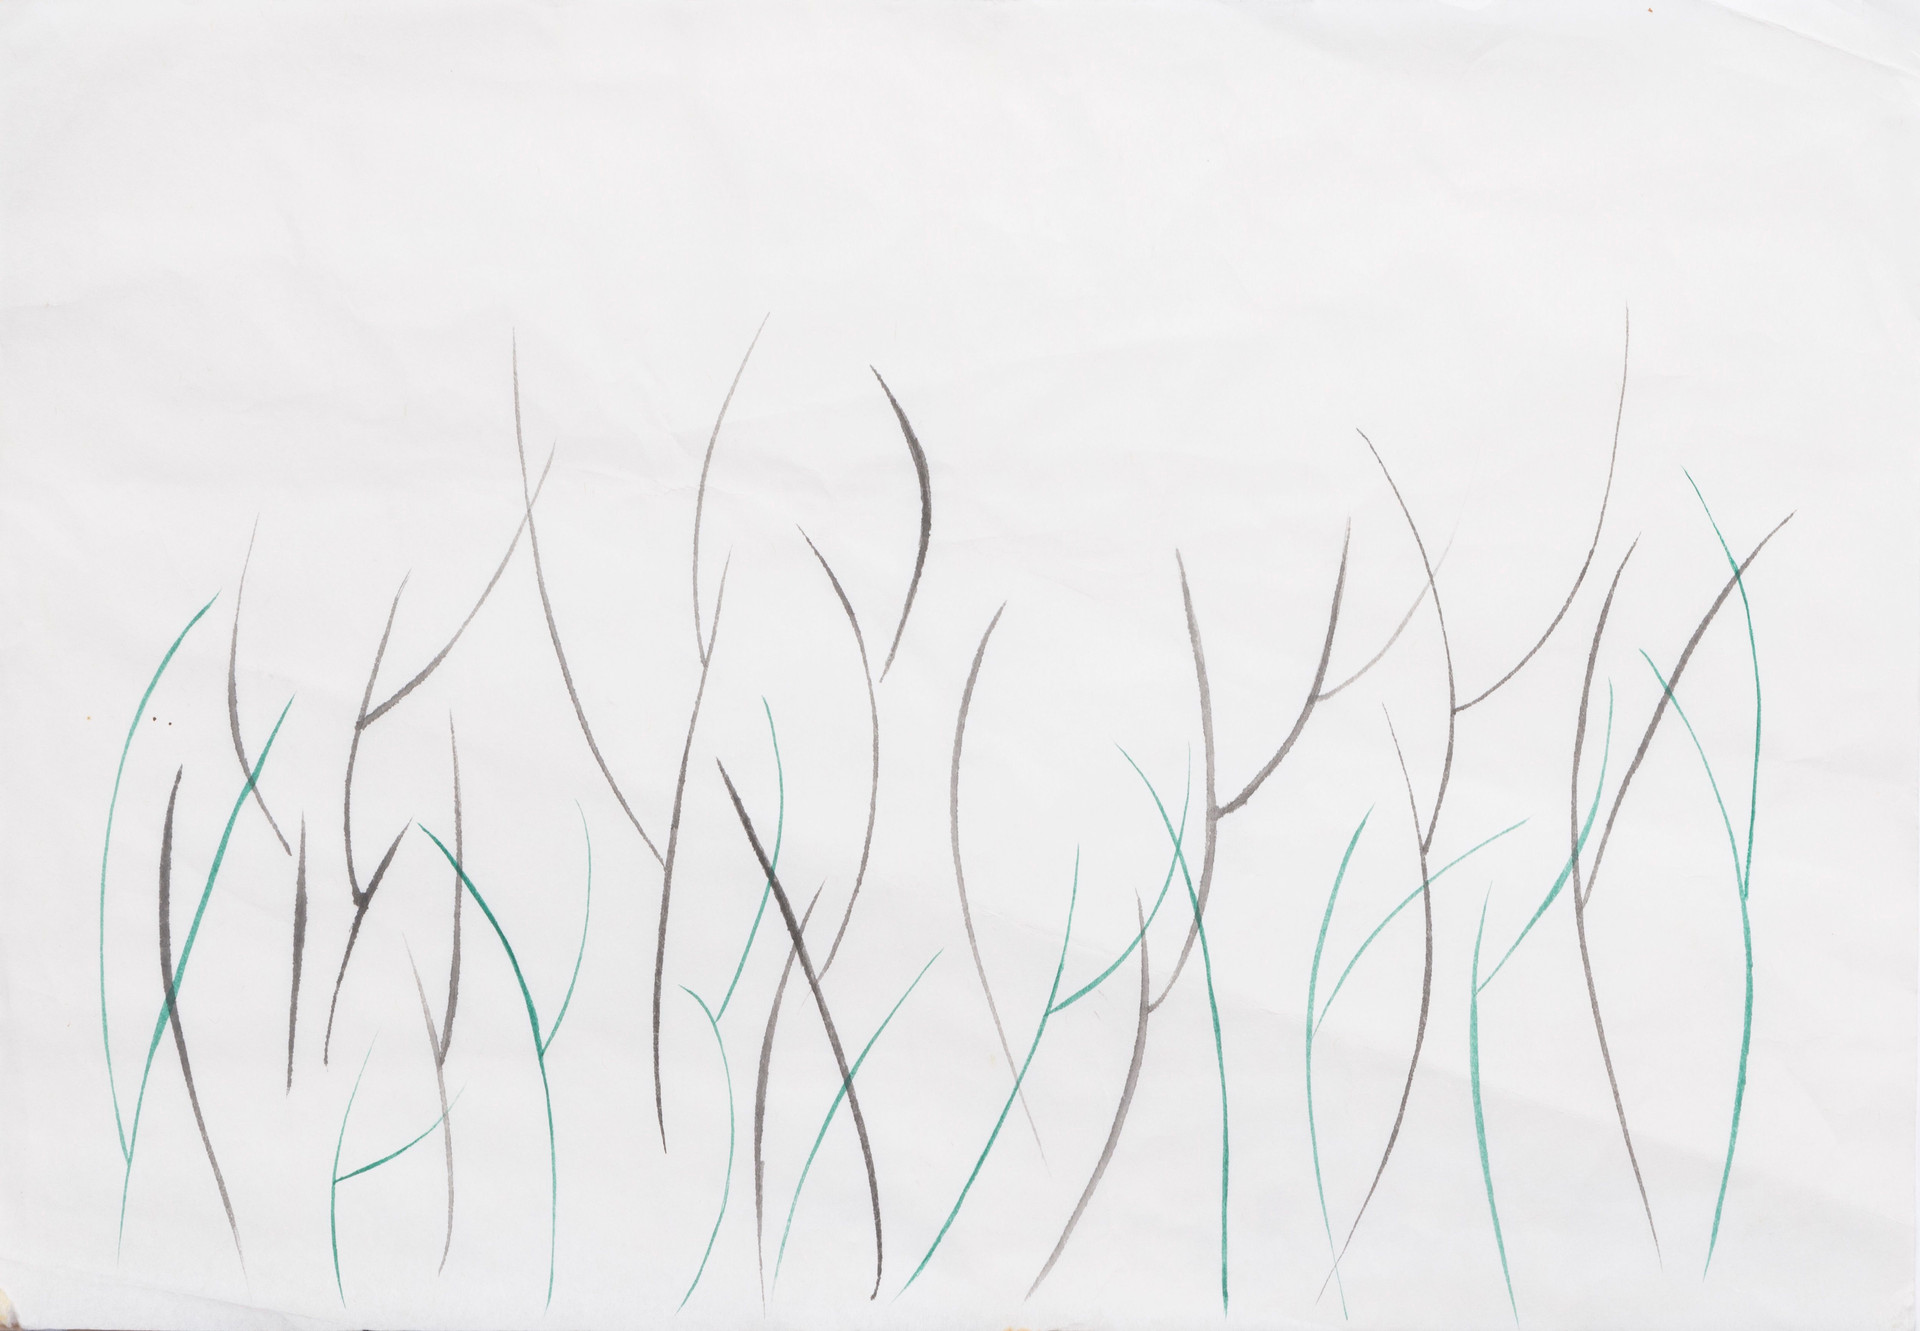 Untitled sketch - simple green and gray tree branches